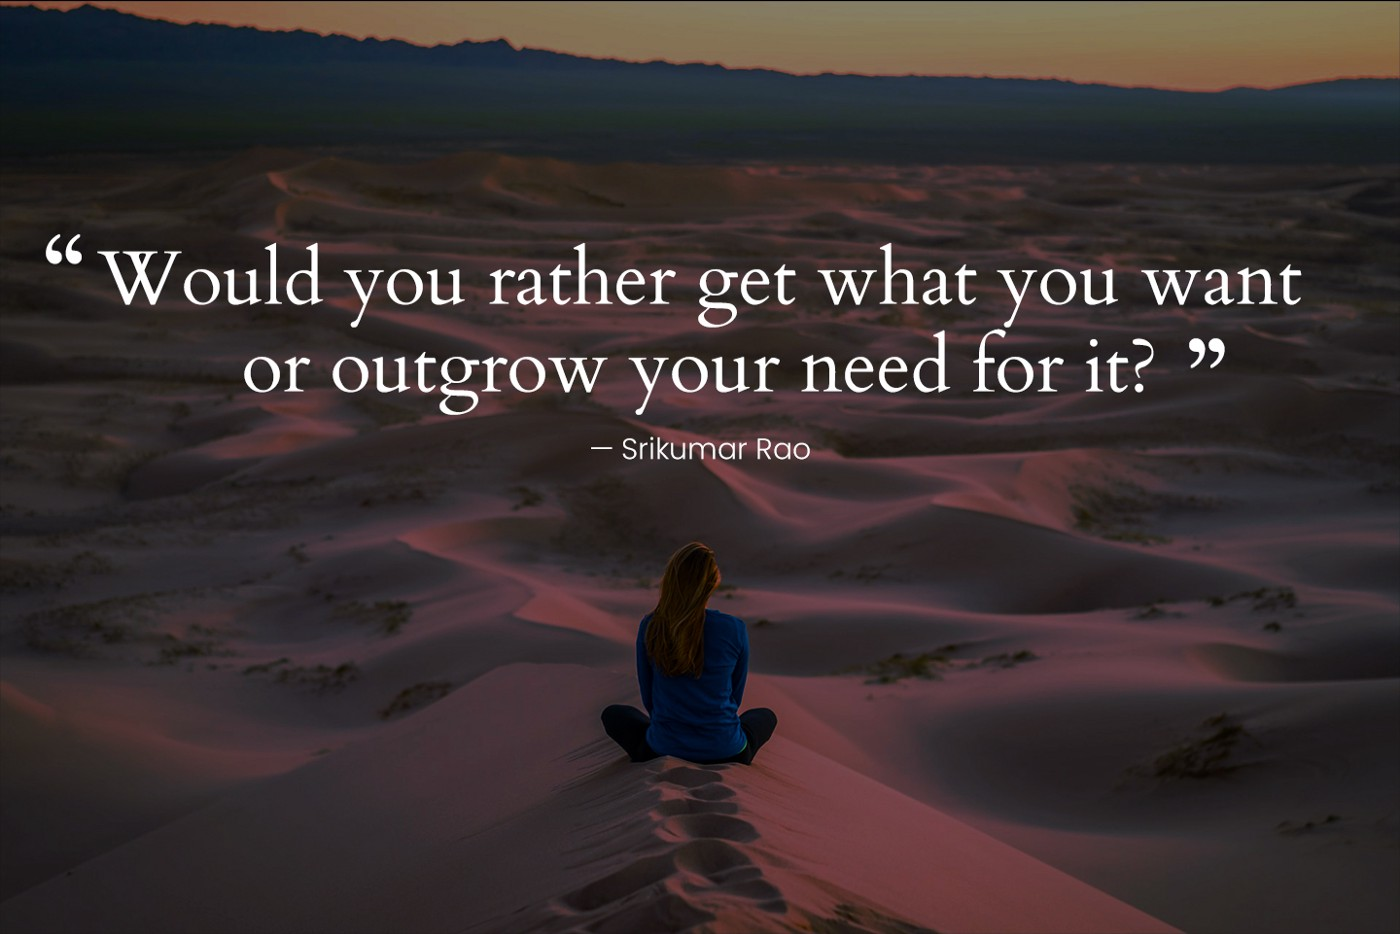 Would you rather get what you want or outgrow your need for it?—Srikumar Rao